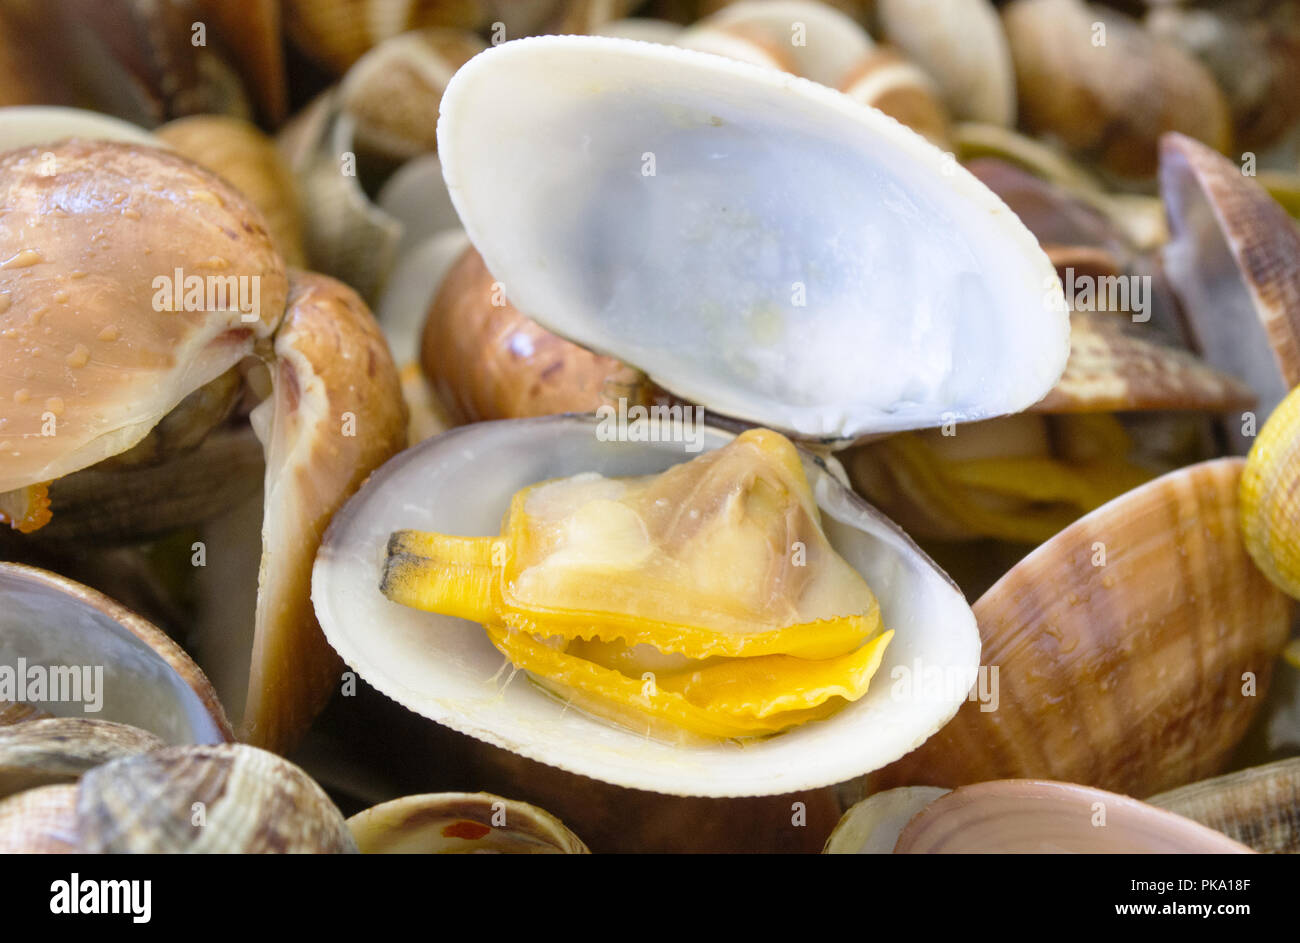 fresh seefood cooked accordin to an italian recipe - Stock Image